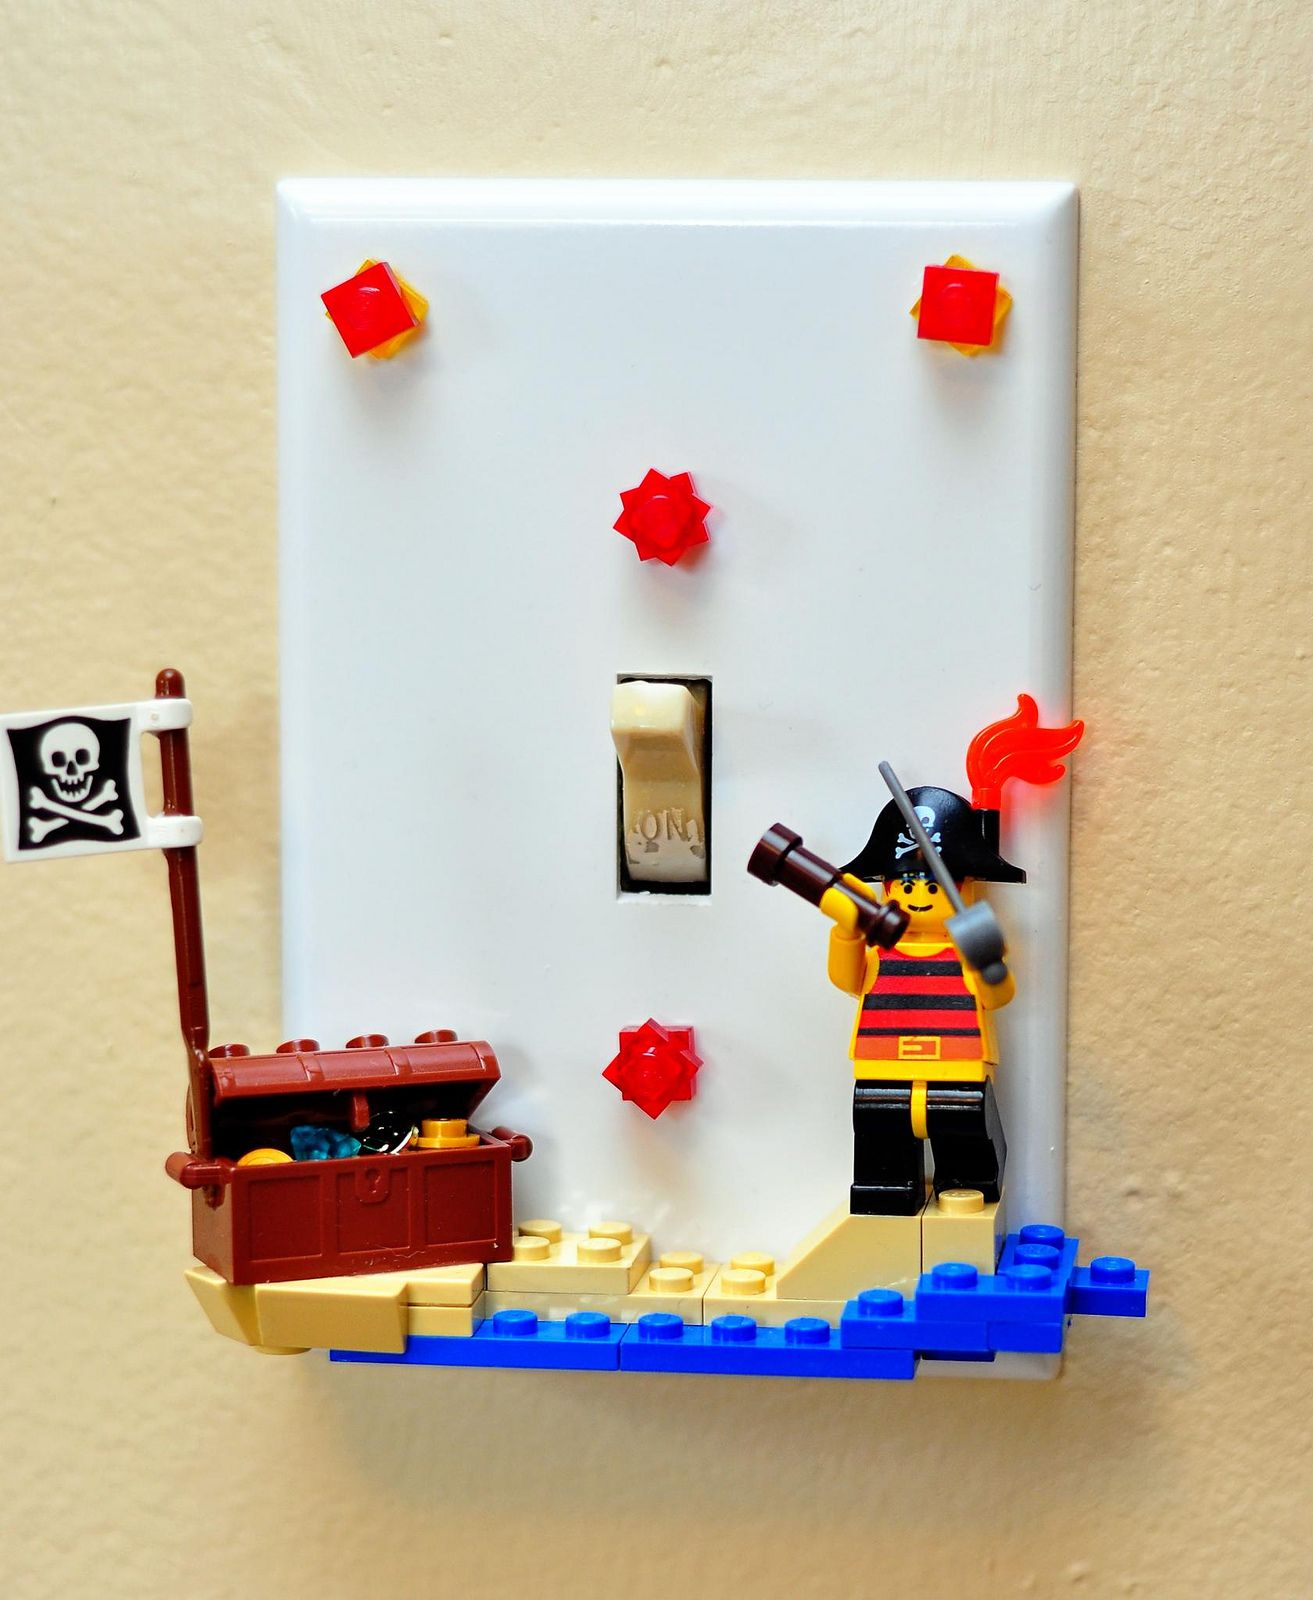 Interruptores Decorados Lego Switchplates Legocreatividades Habitaciones